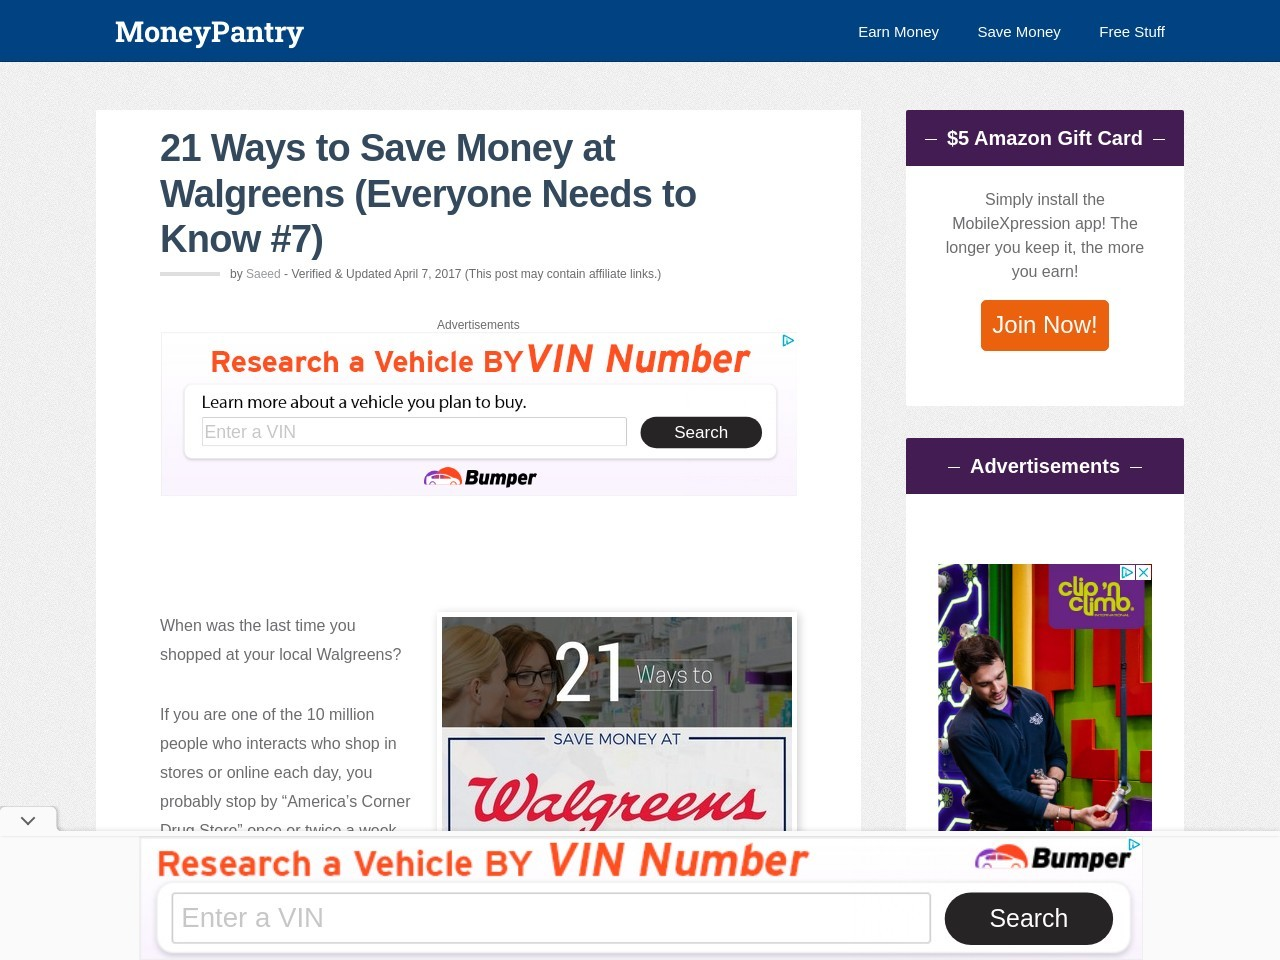 21 Ways to Save Money at Walgreens (Everyone Needs to Know #7)